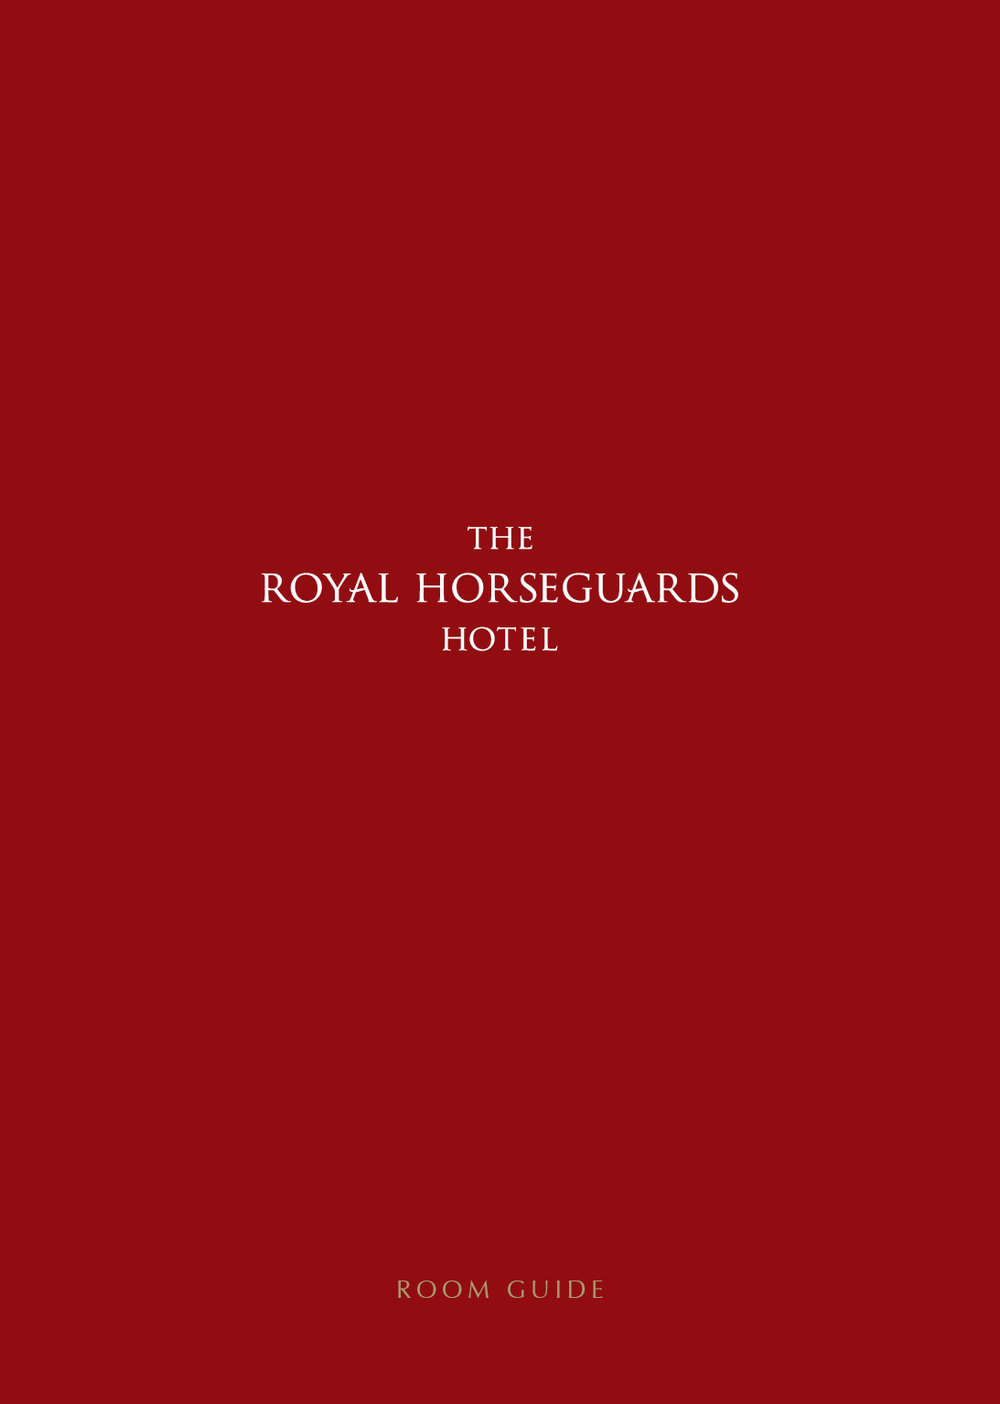 The Royal Horseguards Cover.jpg